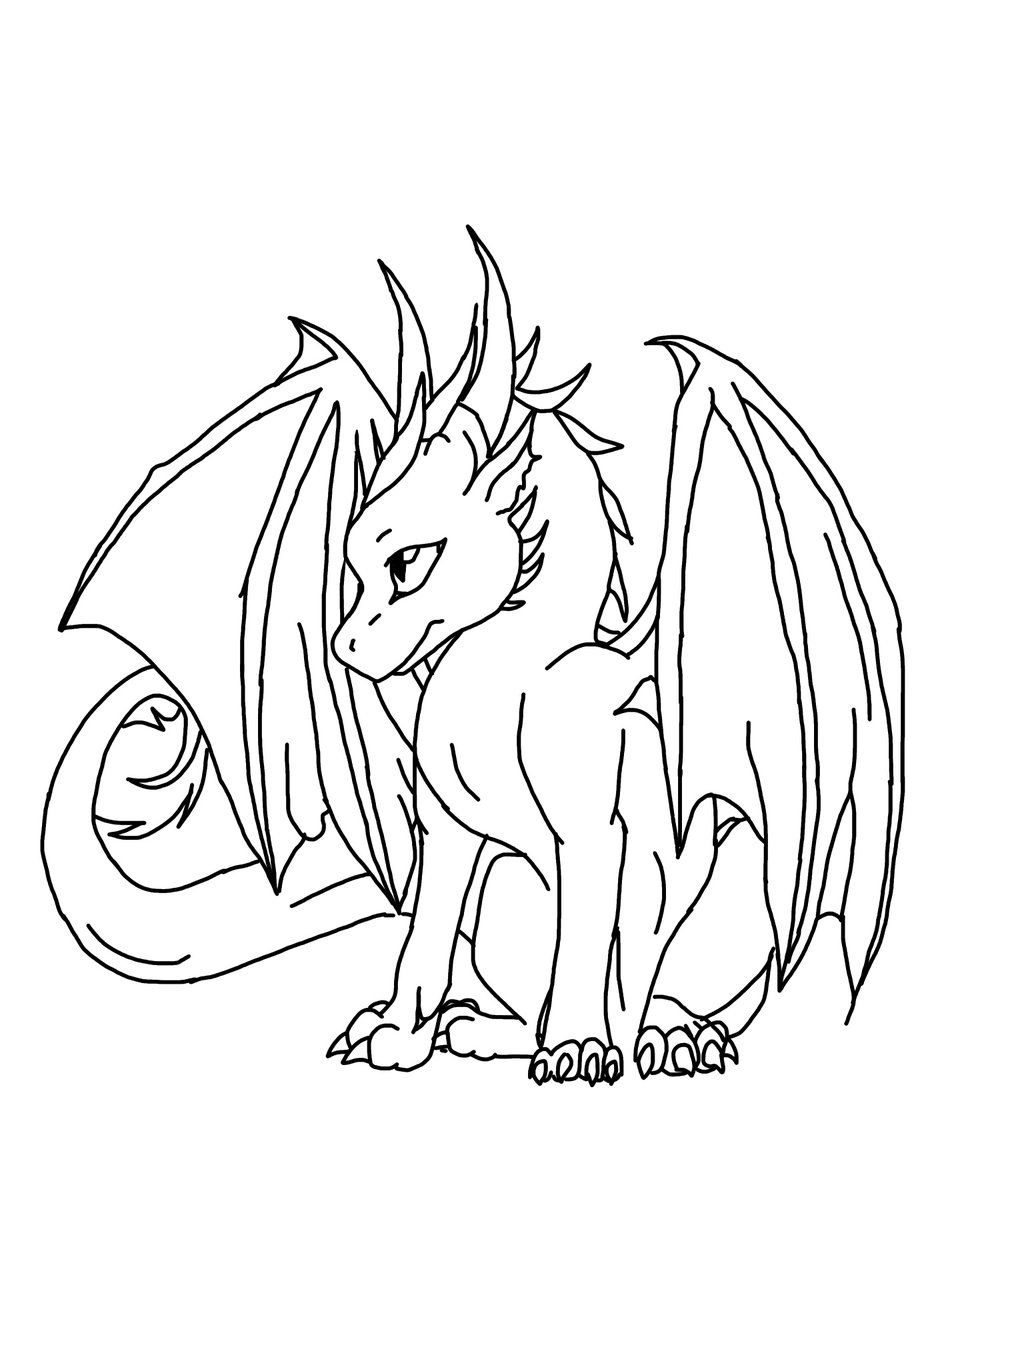 Pix for cool easy dragons drawings pinterest for Cool dragon coloring pages